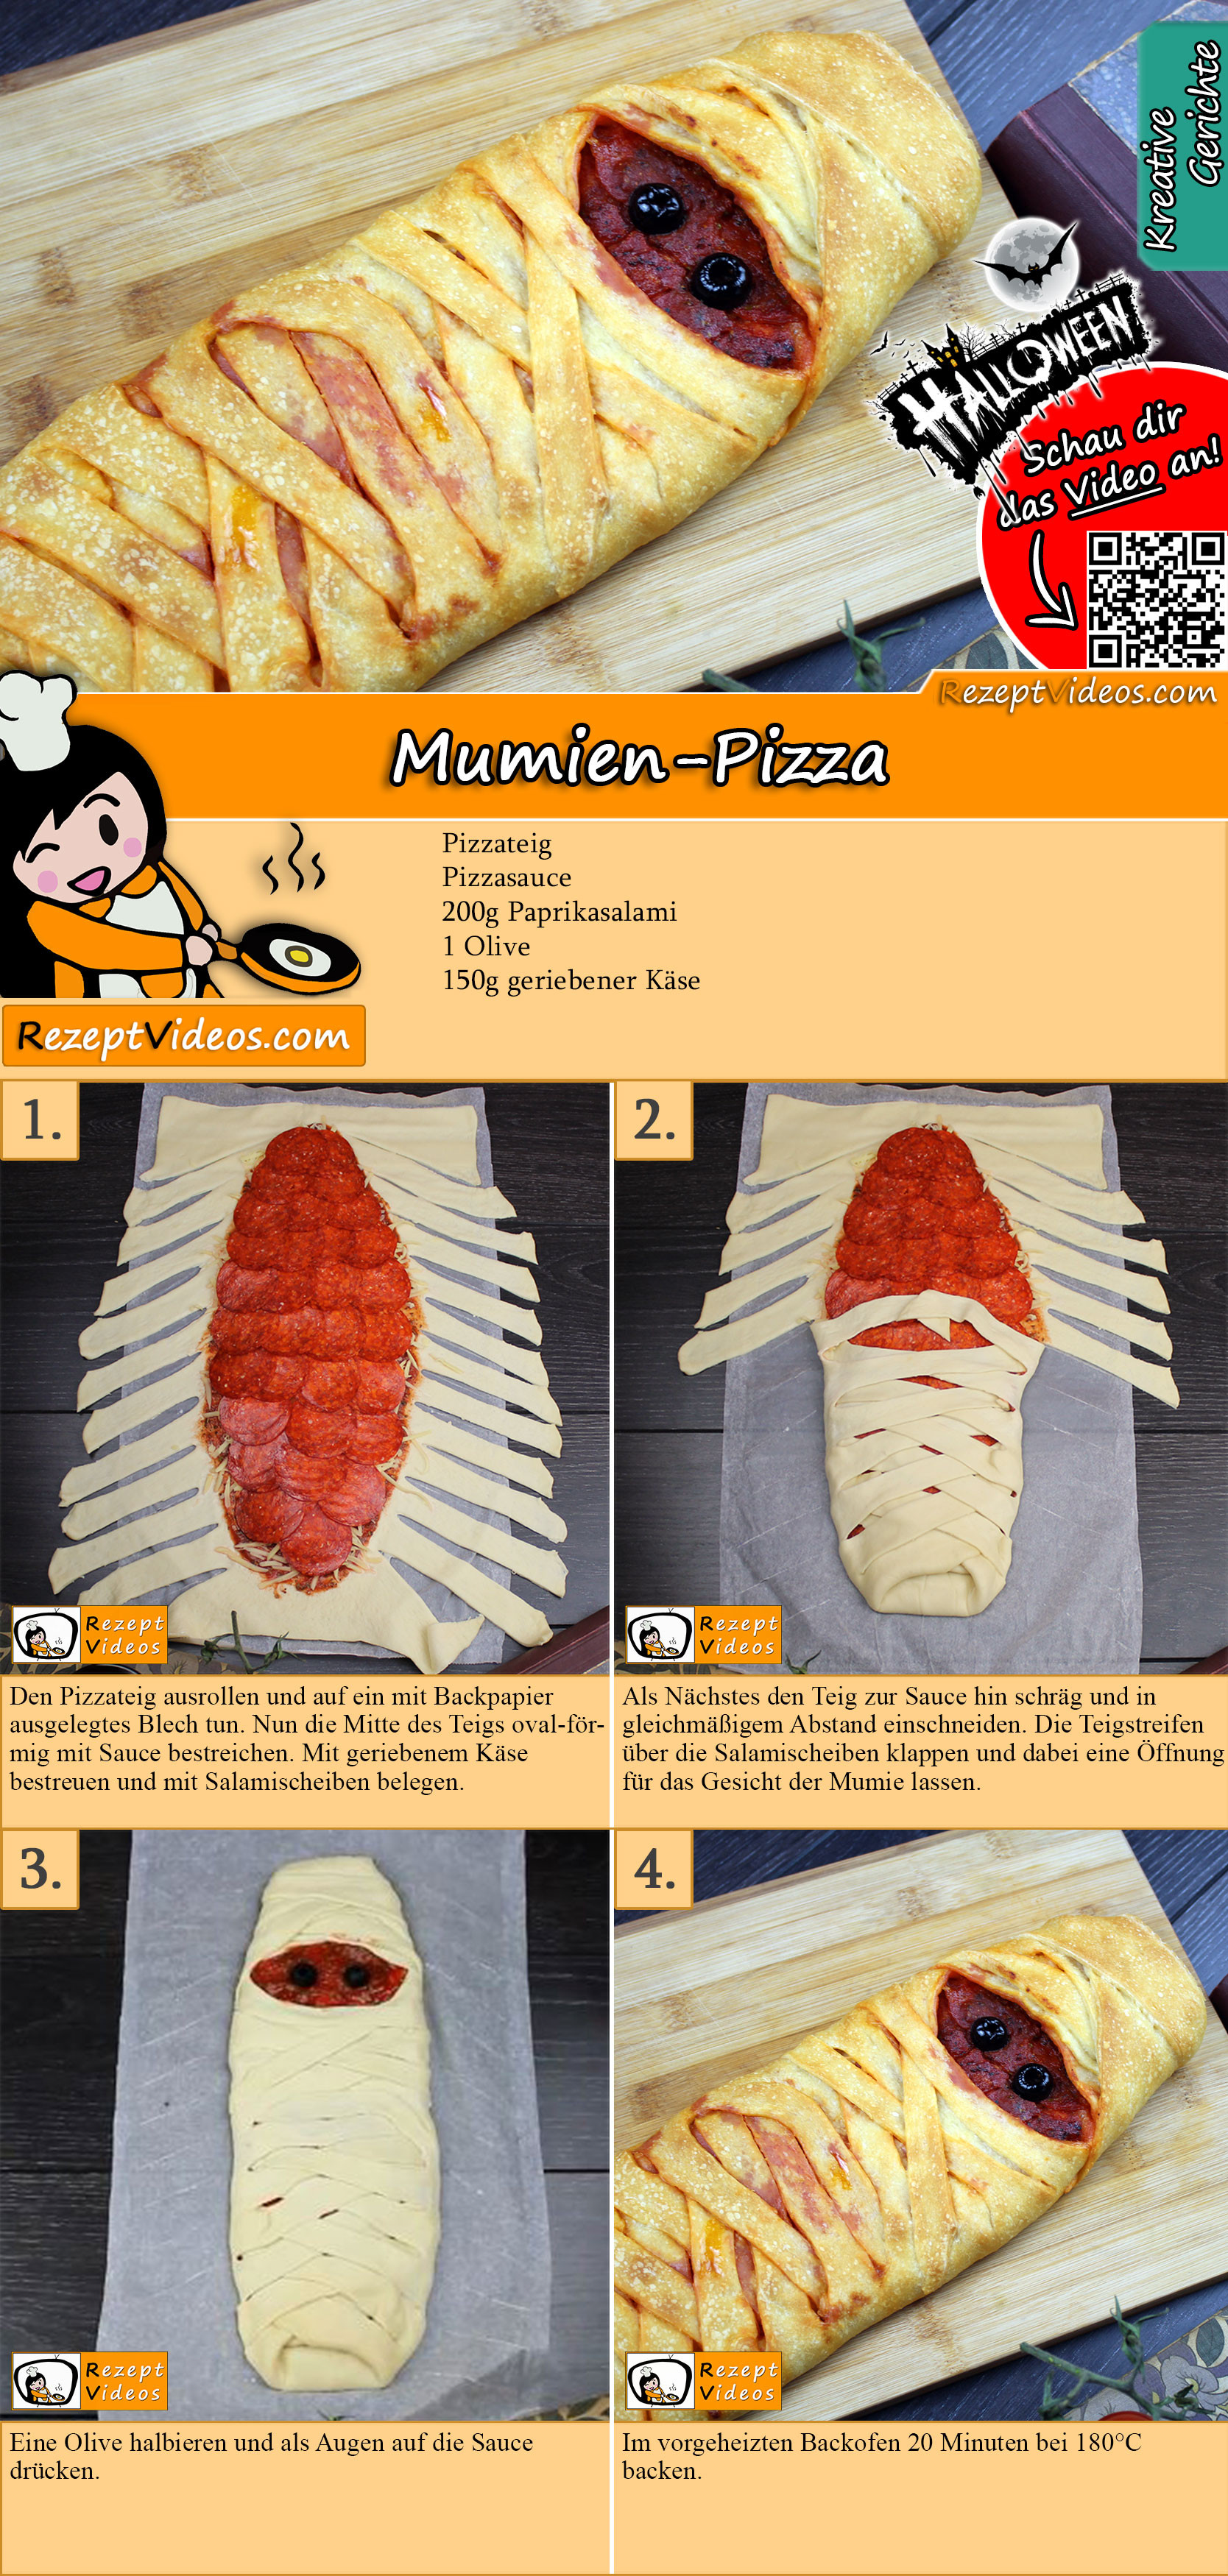 Mumien-Pizza Rezept mit Video